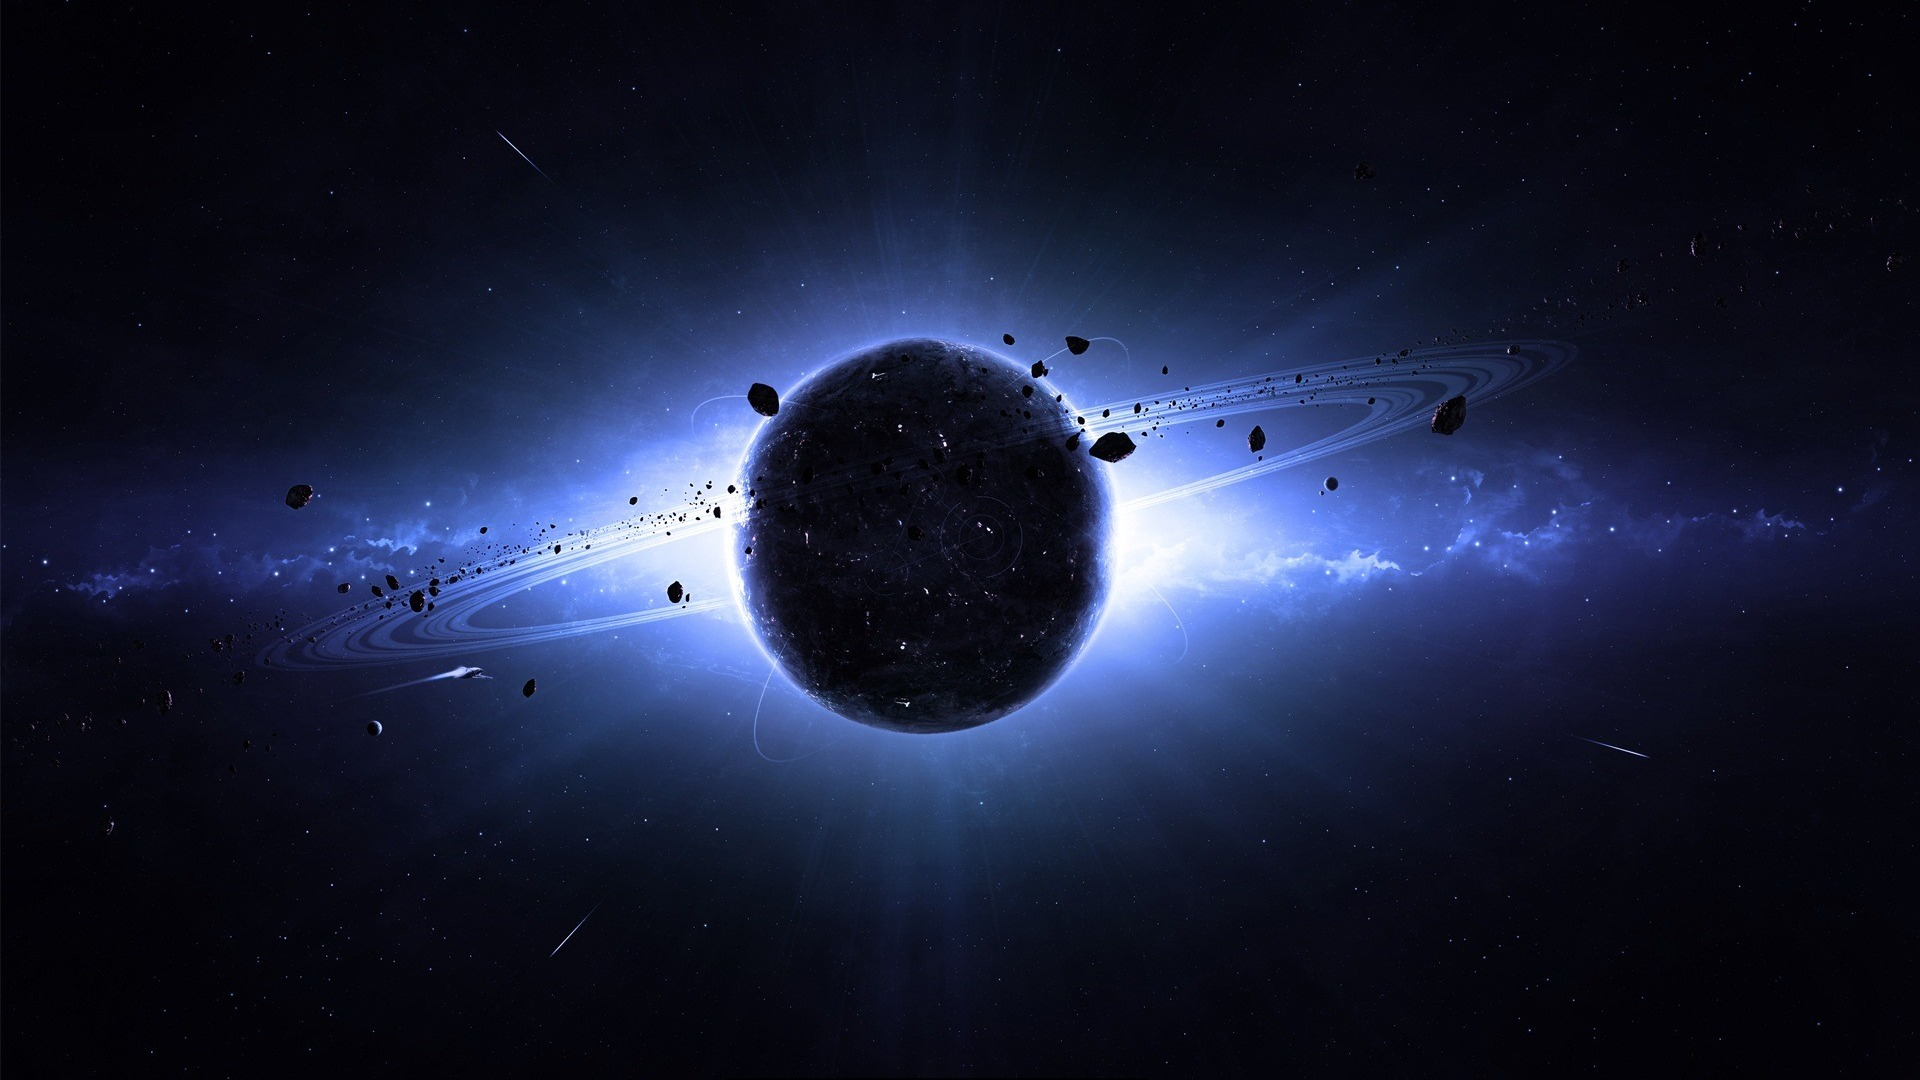 Space HD wallpaper 1920x1080 10   hebusorg   High Definition 1920x1080